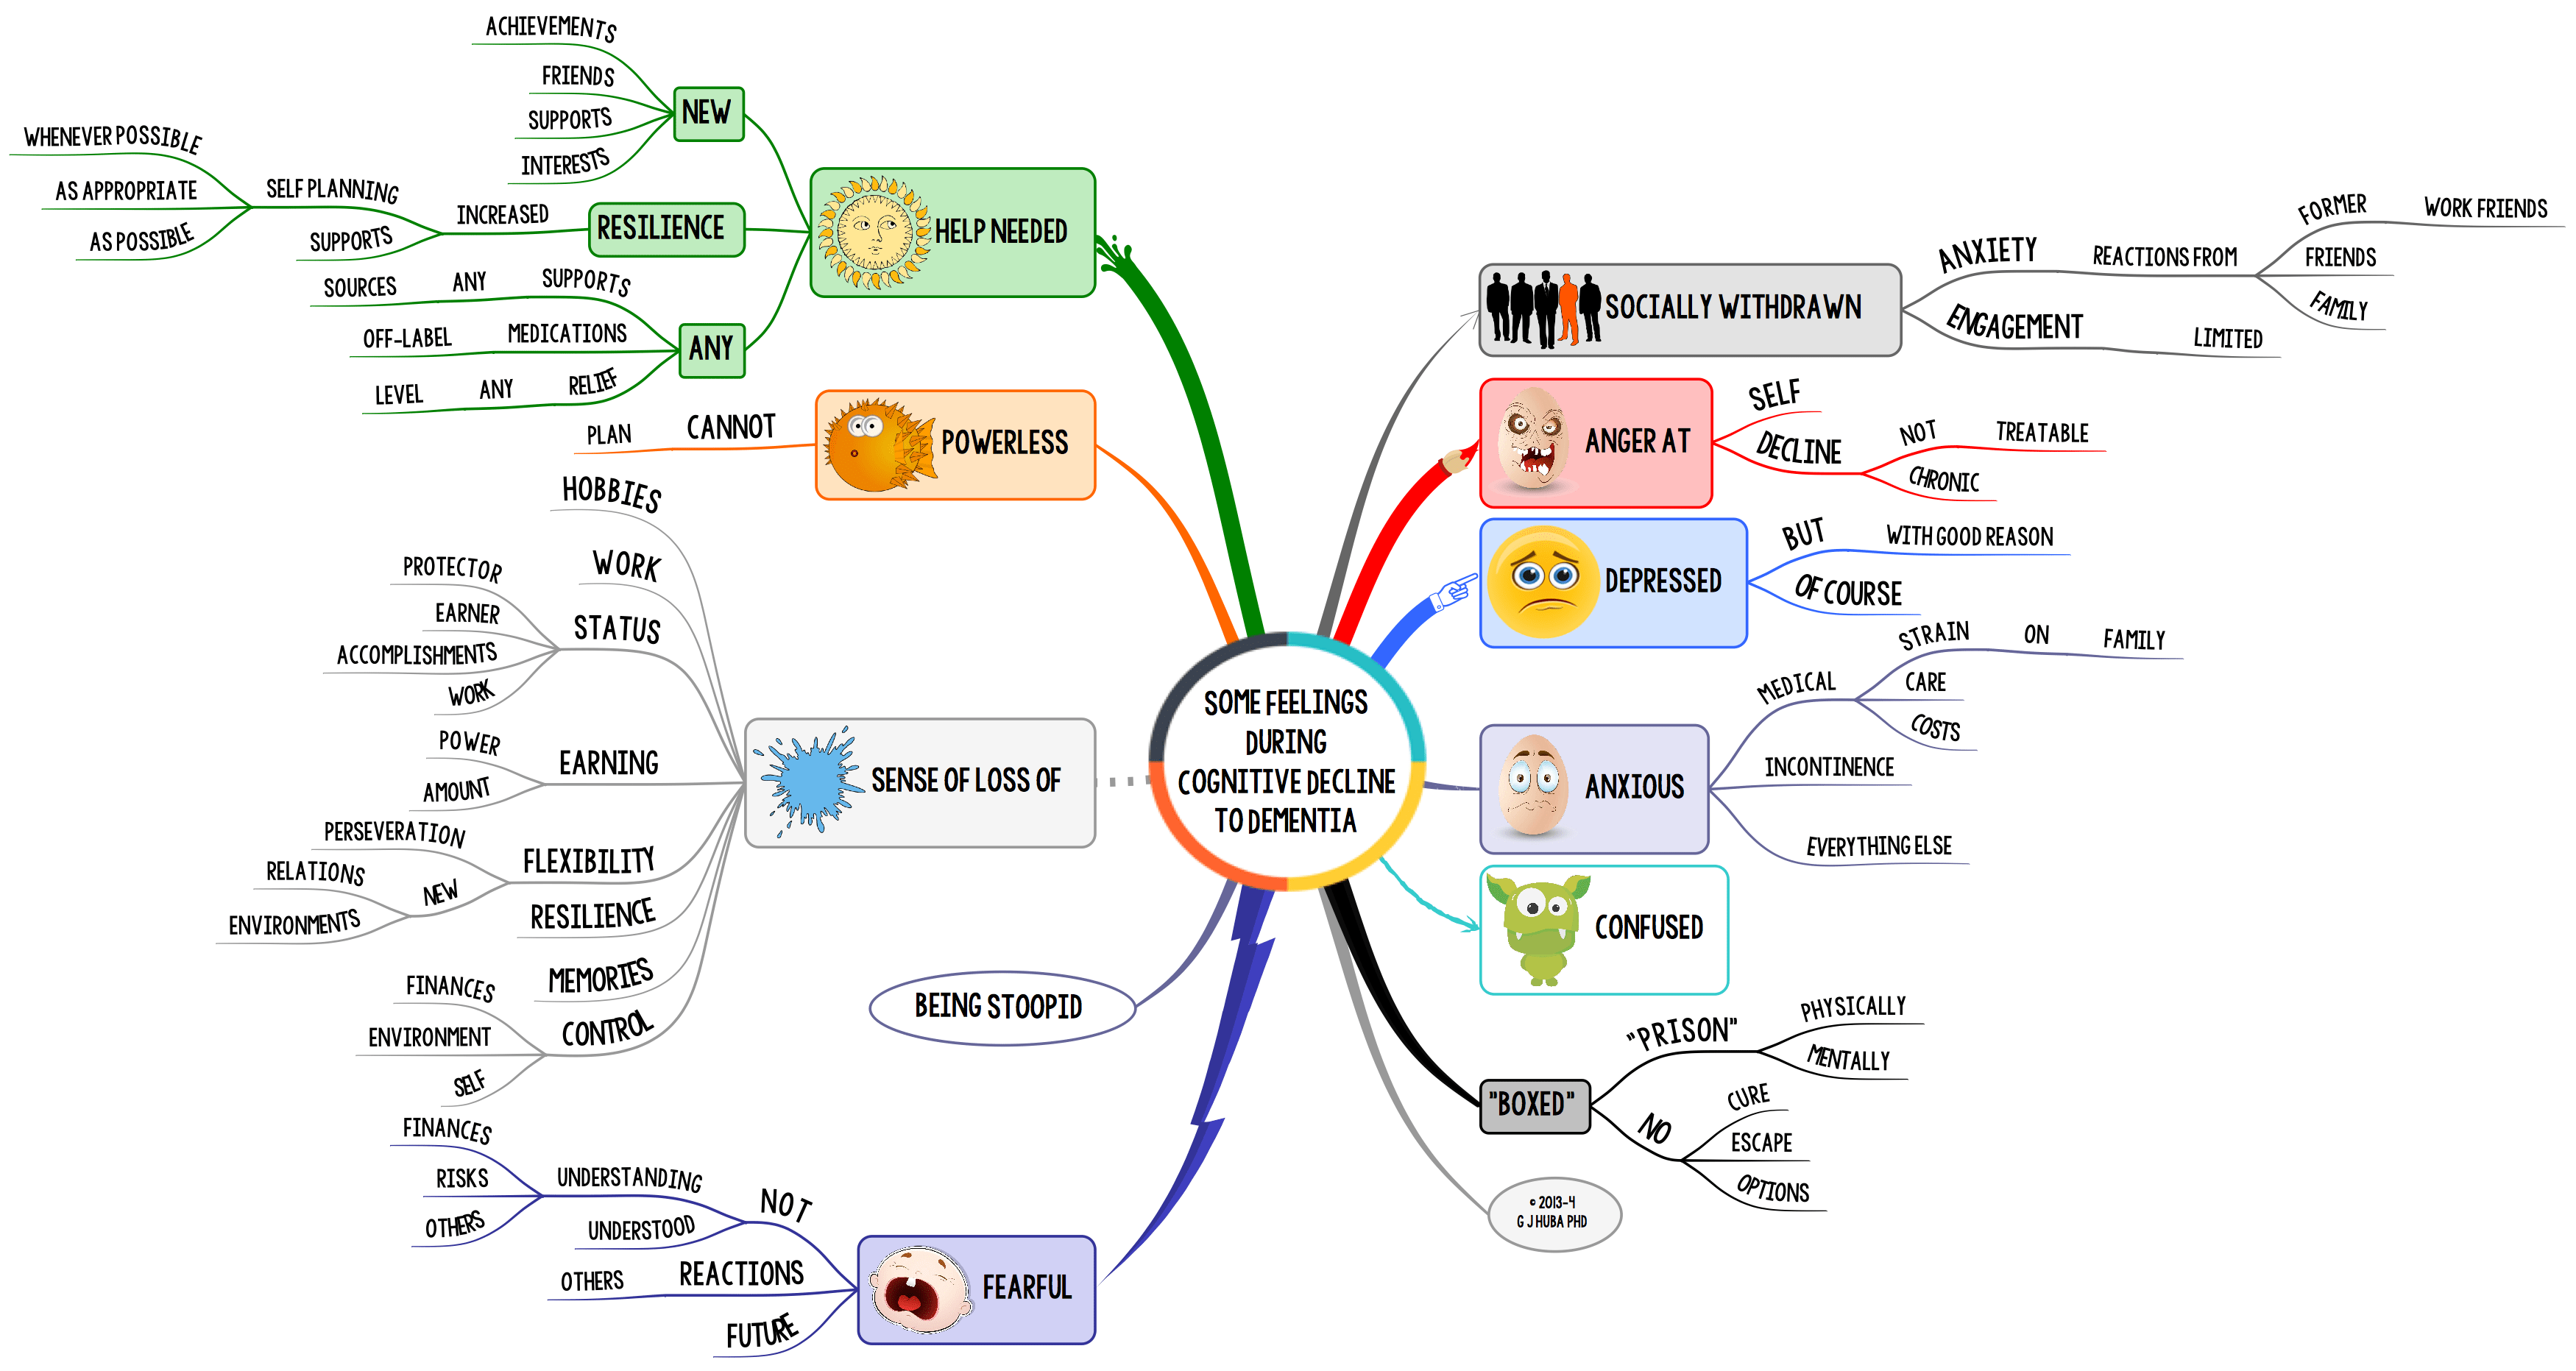 Mindmap Of Some Possible Feelings During